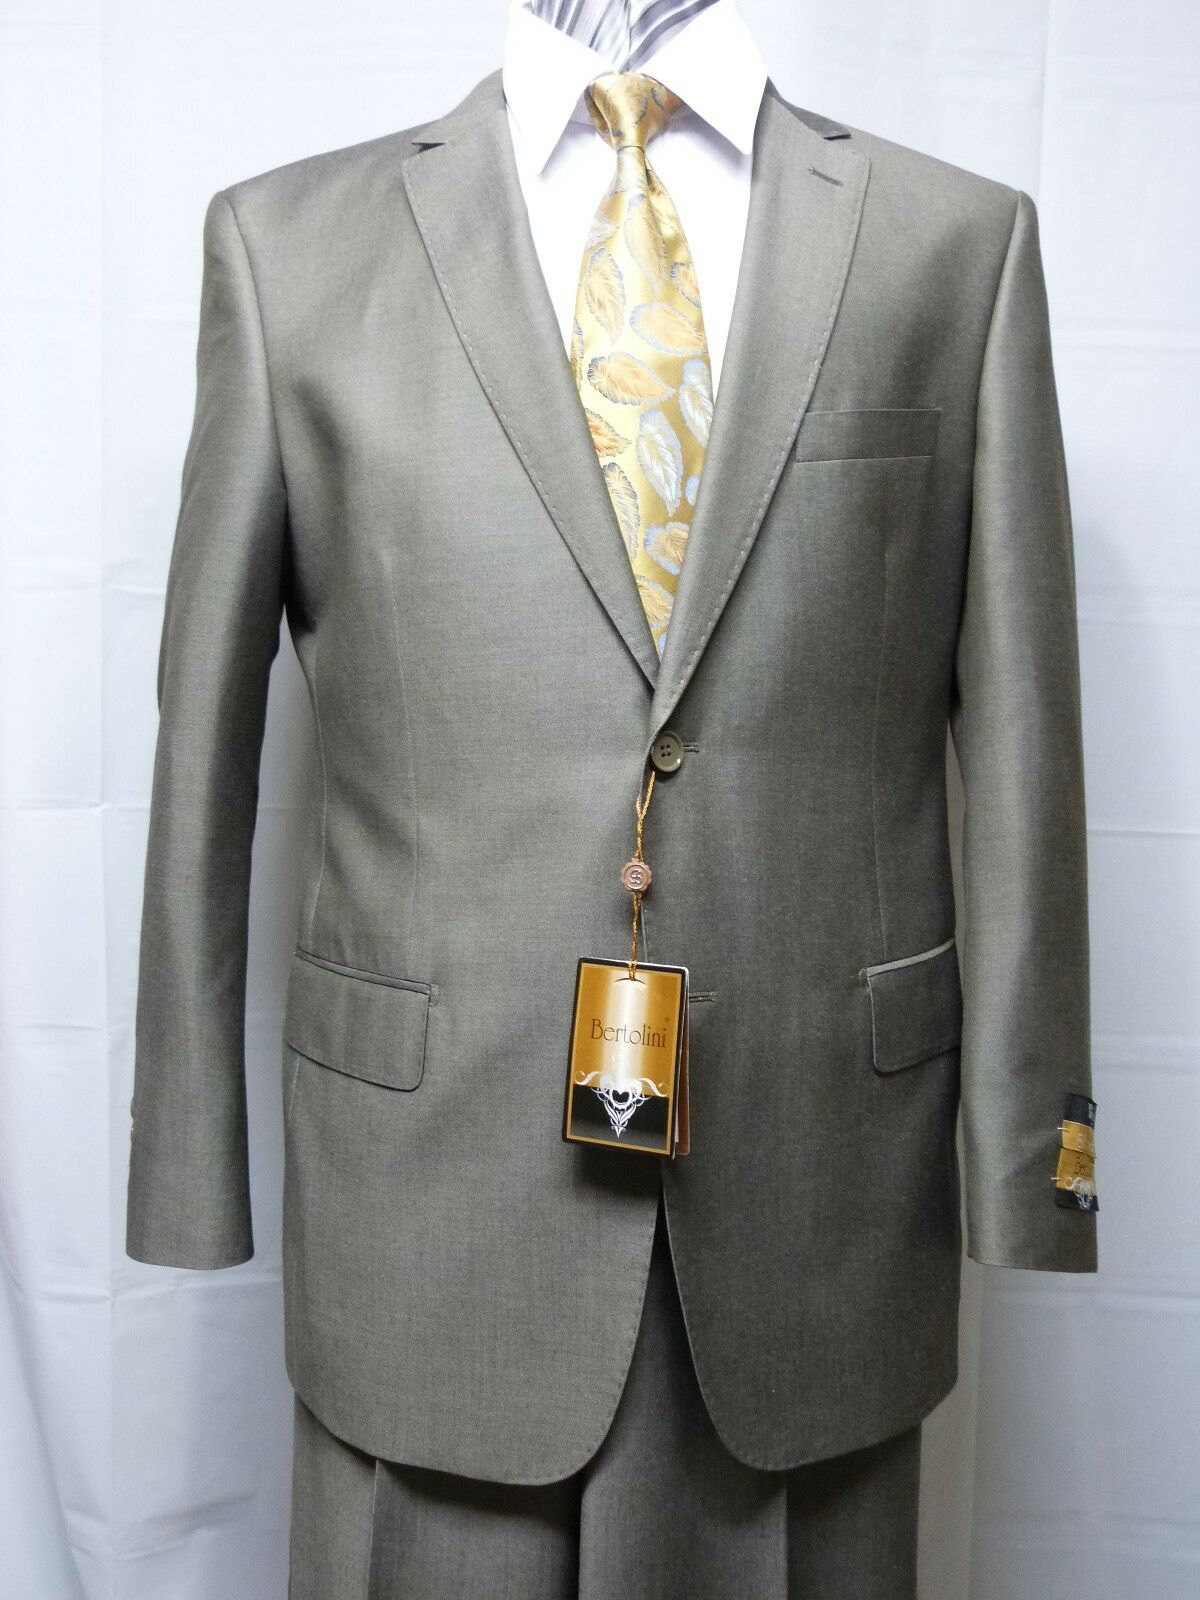 Bertolini Men's Suit,Two Button, Silk Wool Blend Light Olive-NWT